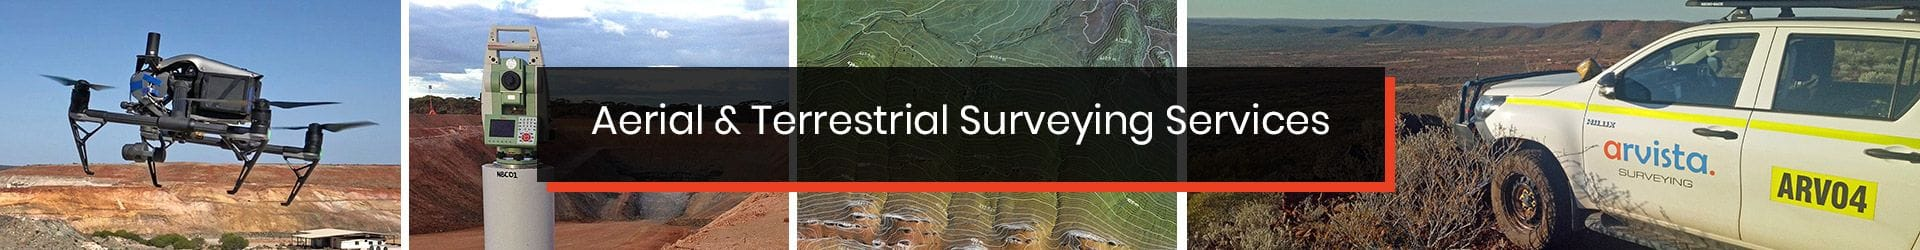 Arvista Aerial & Terrestrial Surveying Services